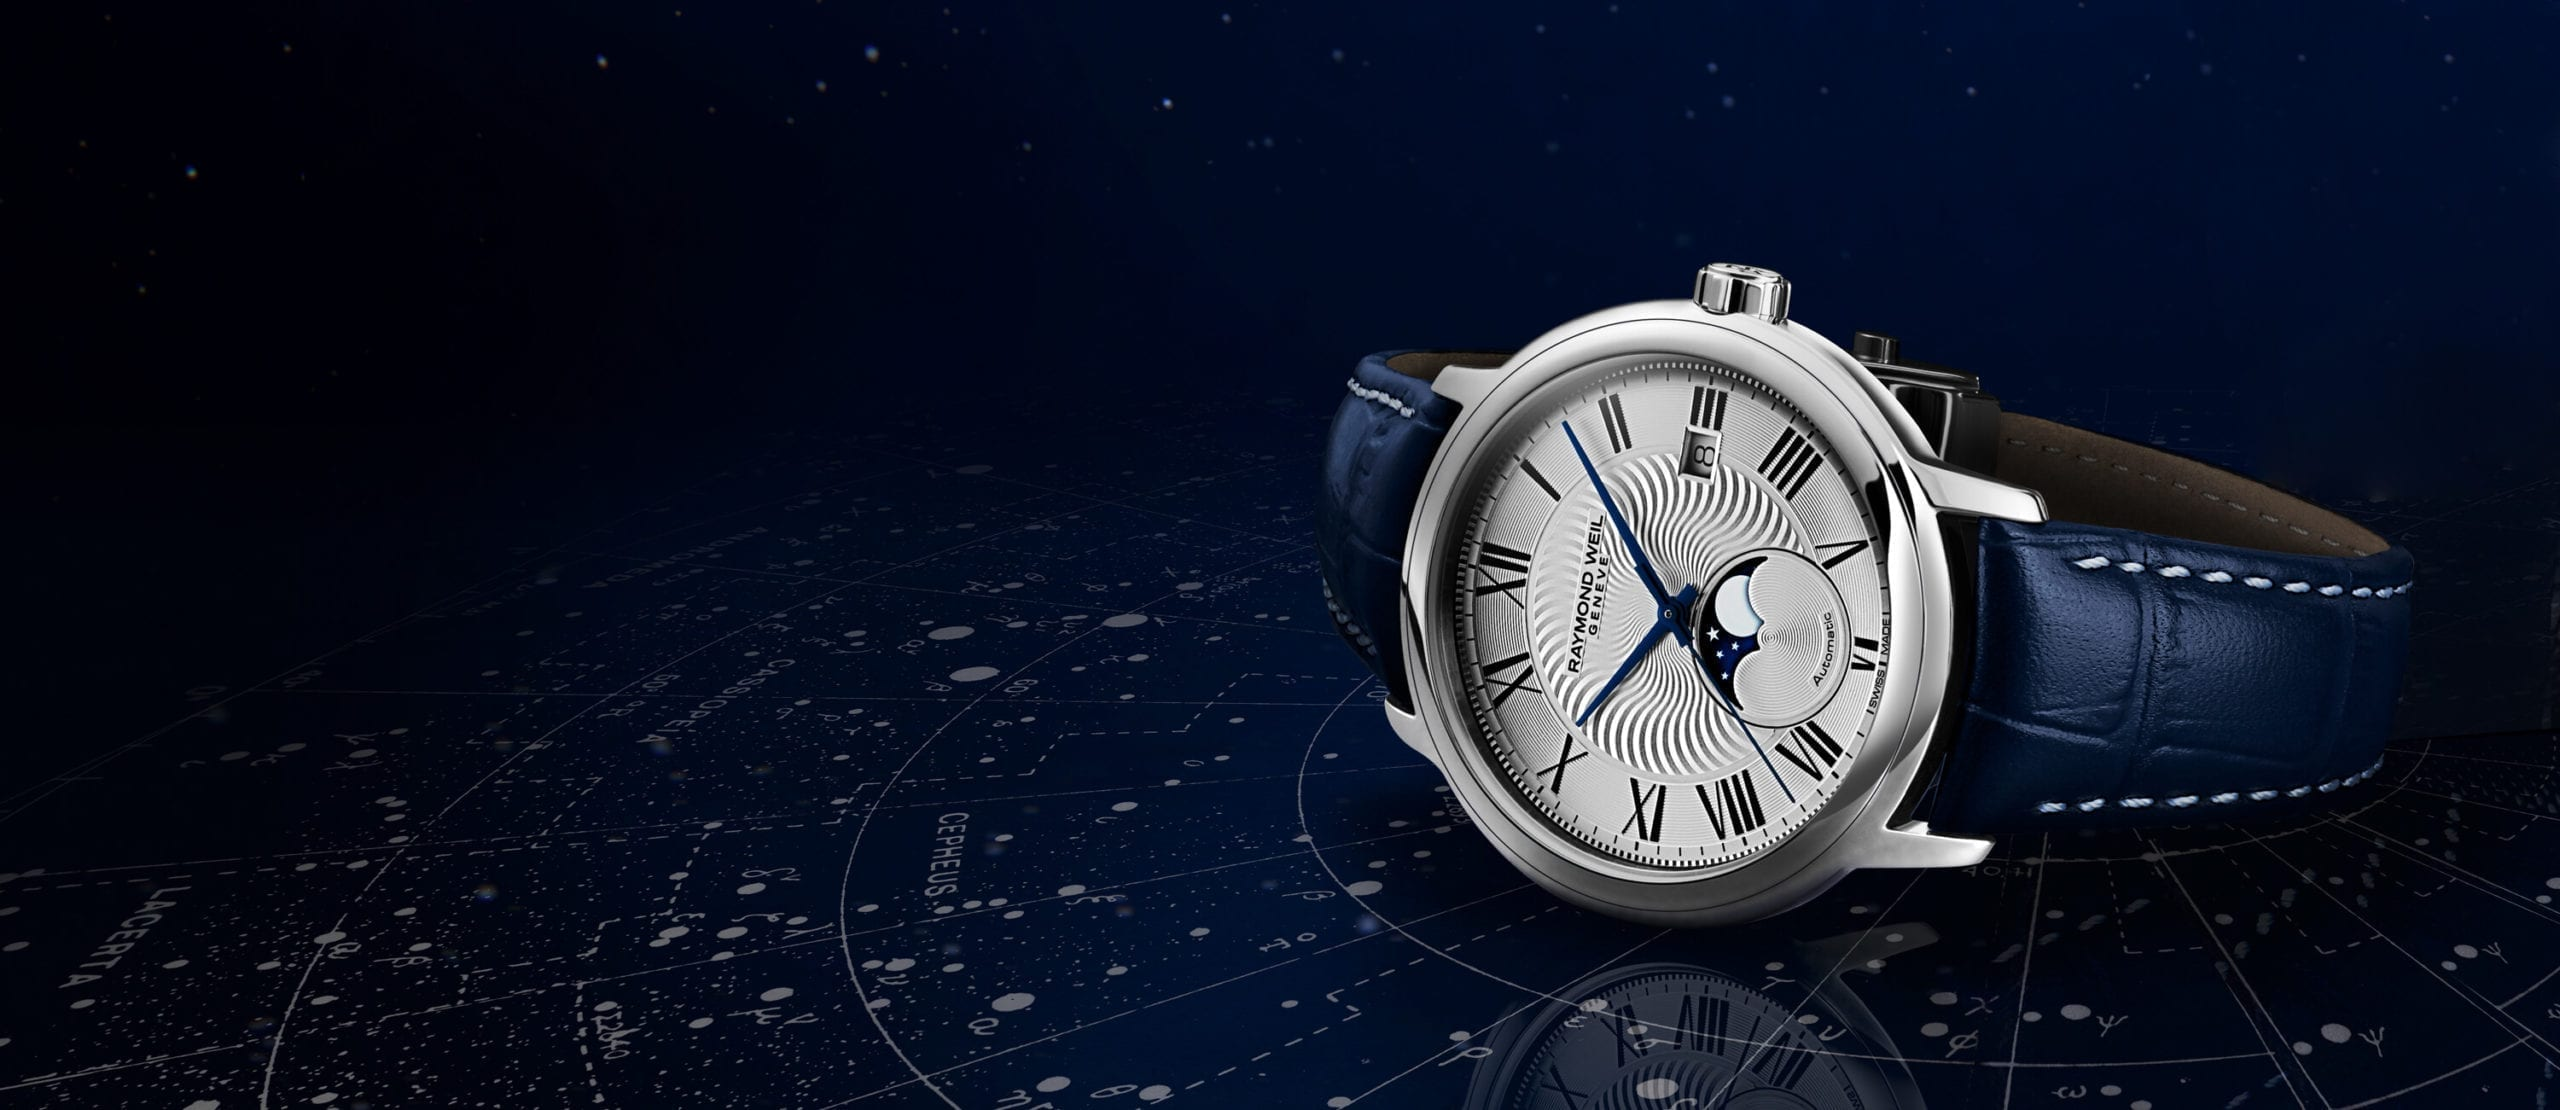 RAYMOND WEIL Maestro Moon Phase Automatic Blue leather watch